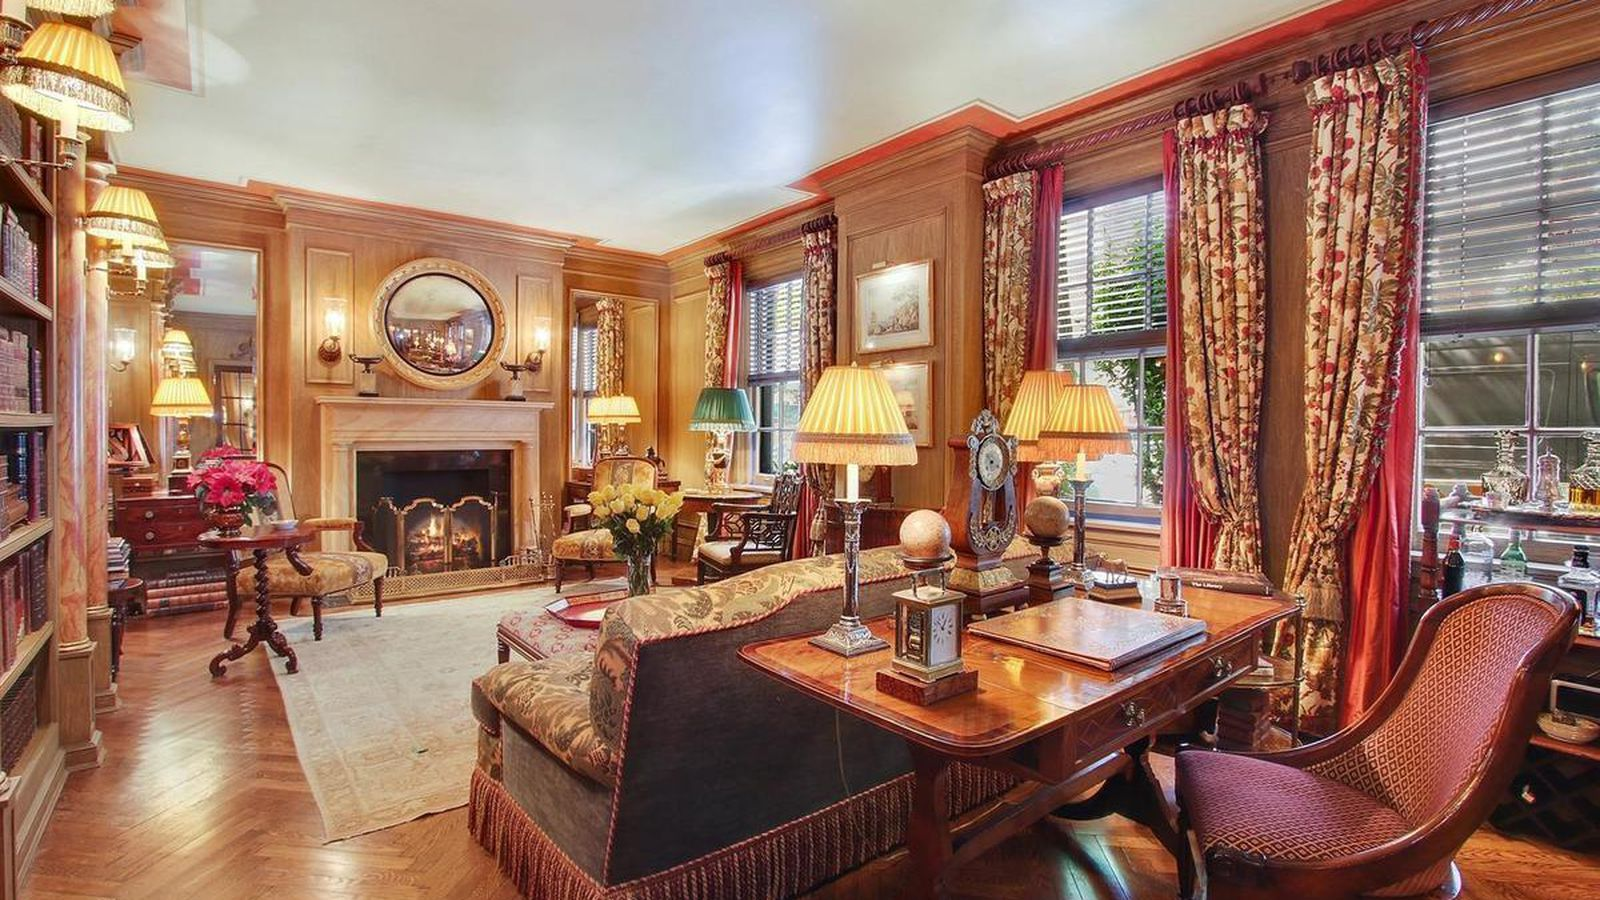 Sutton place co op with edwardian vibes seeks 795k for Sutton place nyc apartments for sale